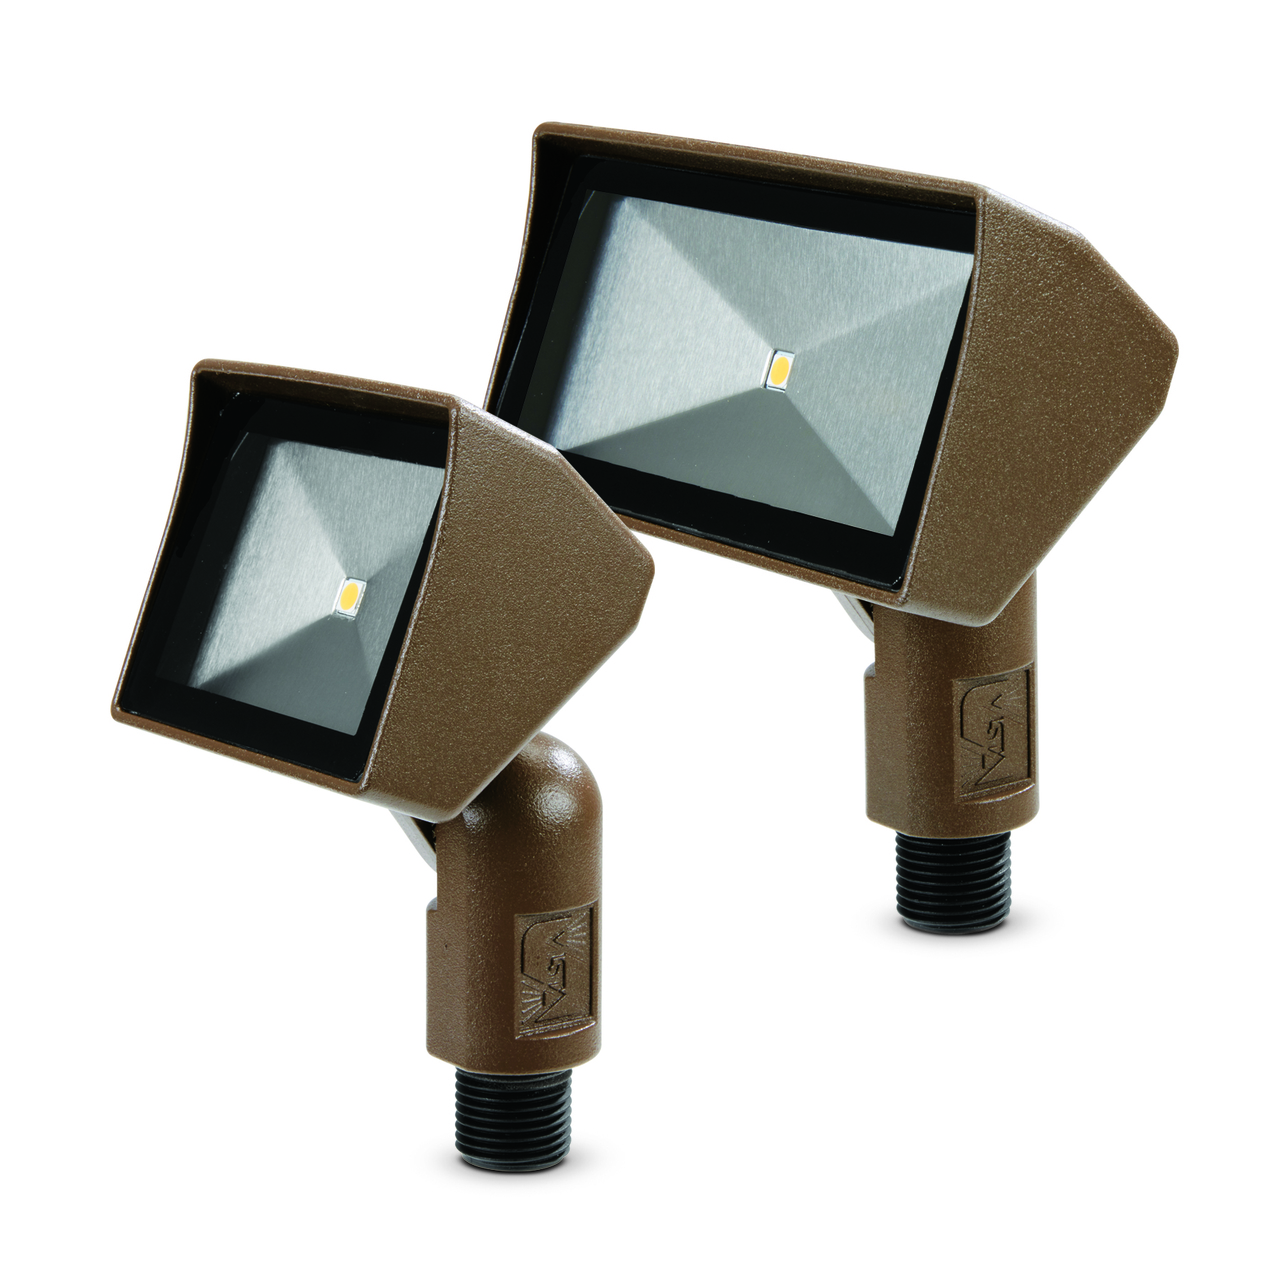 Vista professional outdoor lighting adds 2 mini floodlights the companys new models come in a wide variety of colors via 16 standard polyester powder coat finishes photo vista professional outdoor lighting aloadofball Image collections